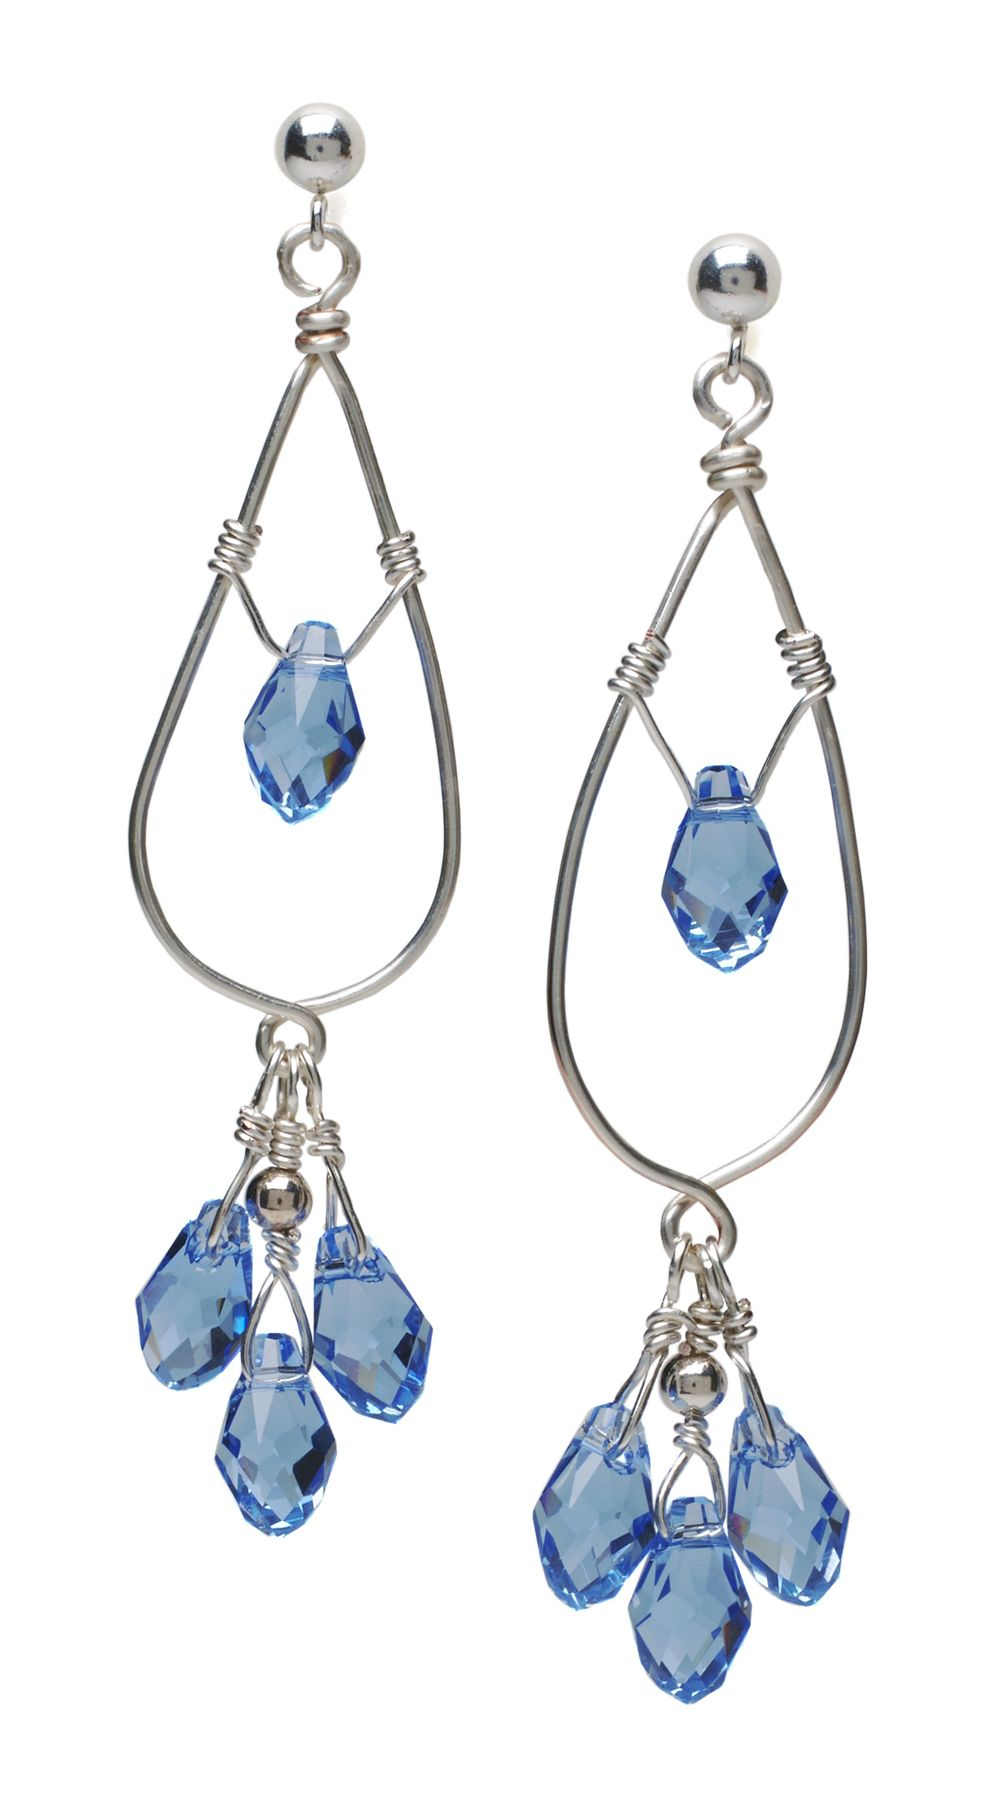 Crystal wire earrings these are cute